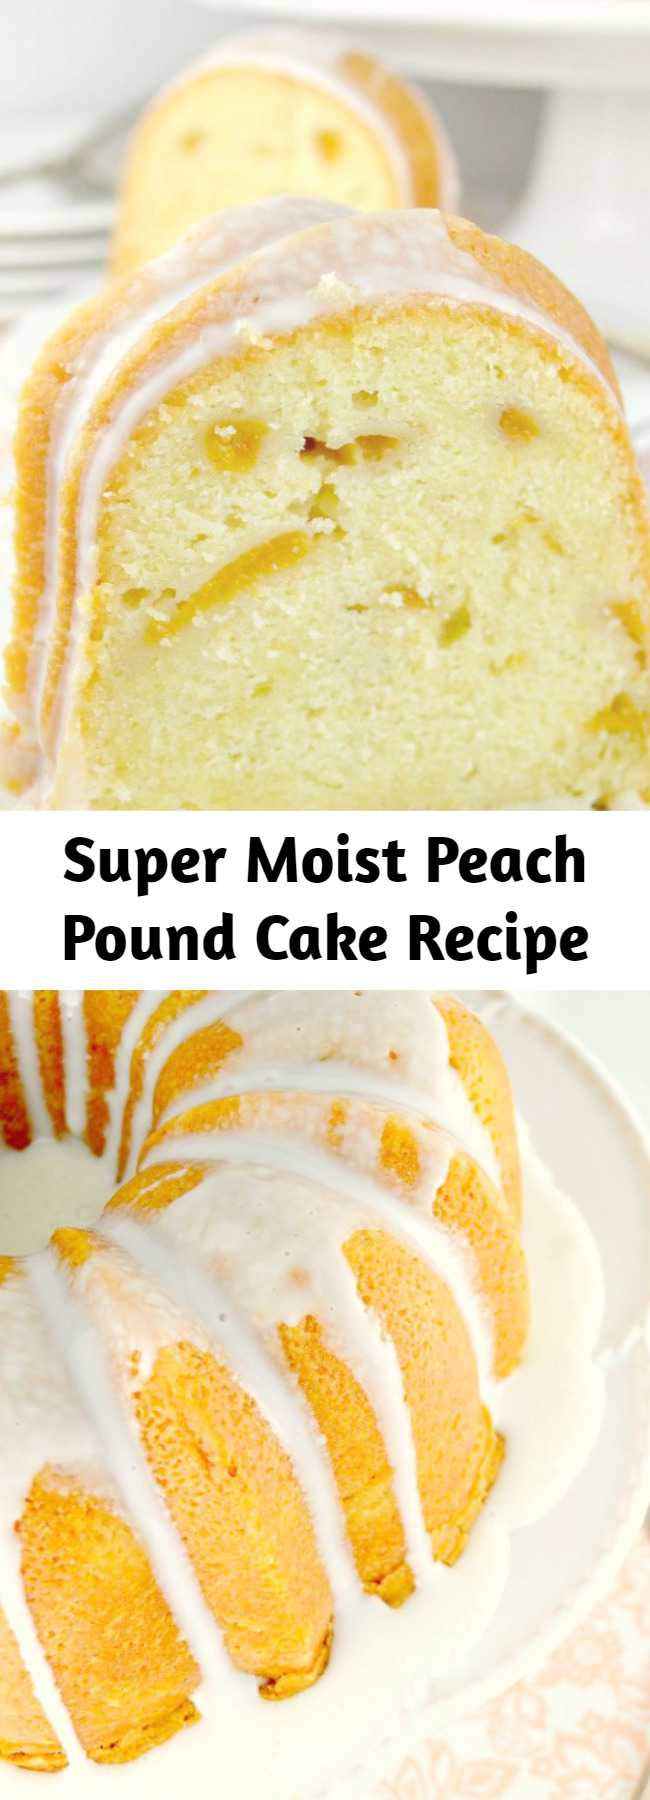 The BEST Peach Pound Cake ~ A Buttery, Tender, Super Moist, Sour Cream Pound Cake Loaded With Fresh, Juicy Peaches!